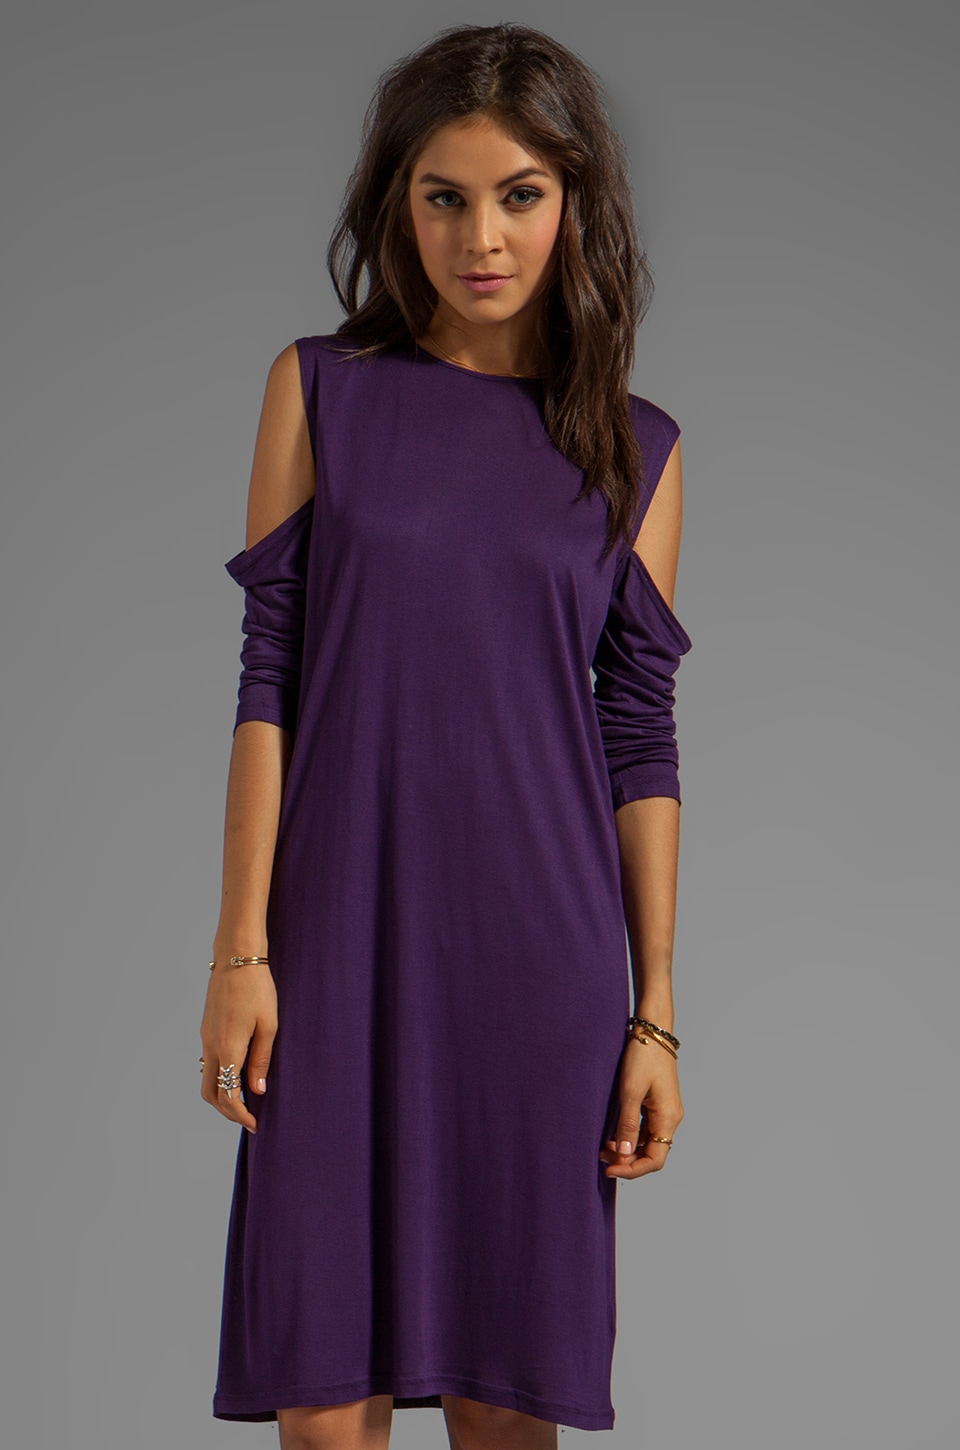 Cheap Monday Sally Dress in Dark Plum